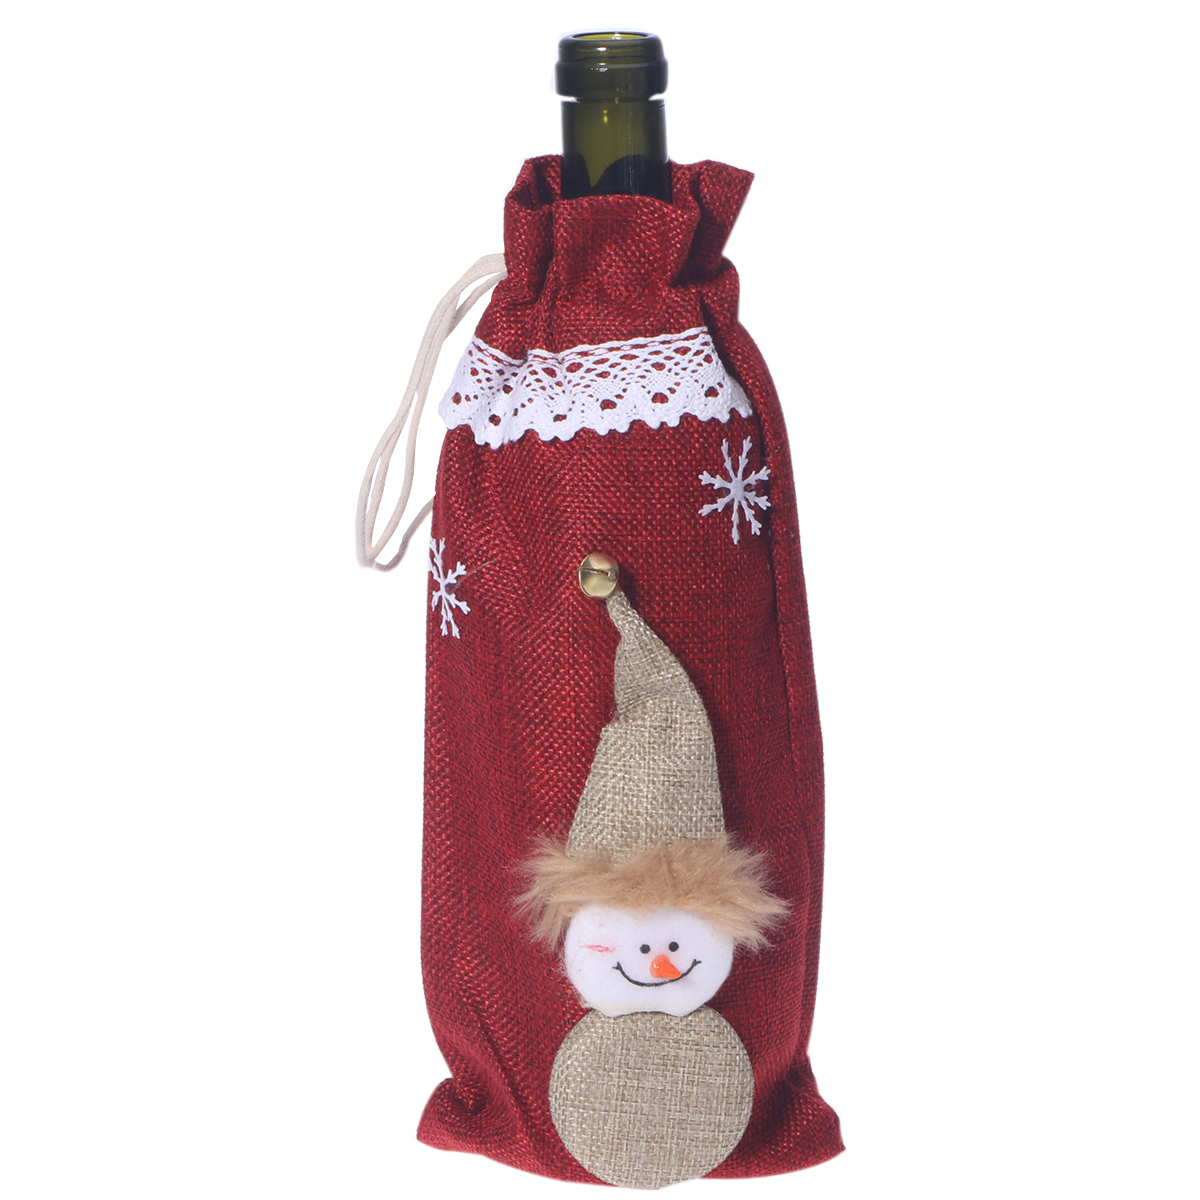 Burlap Lace Champagne And Wine Bottle Cover Cute Christmas Santa Claus Style Drawstring Wine Carrier Bag Holder Home Party Bar Table Decor Candy Gift Wrap (Khaki)